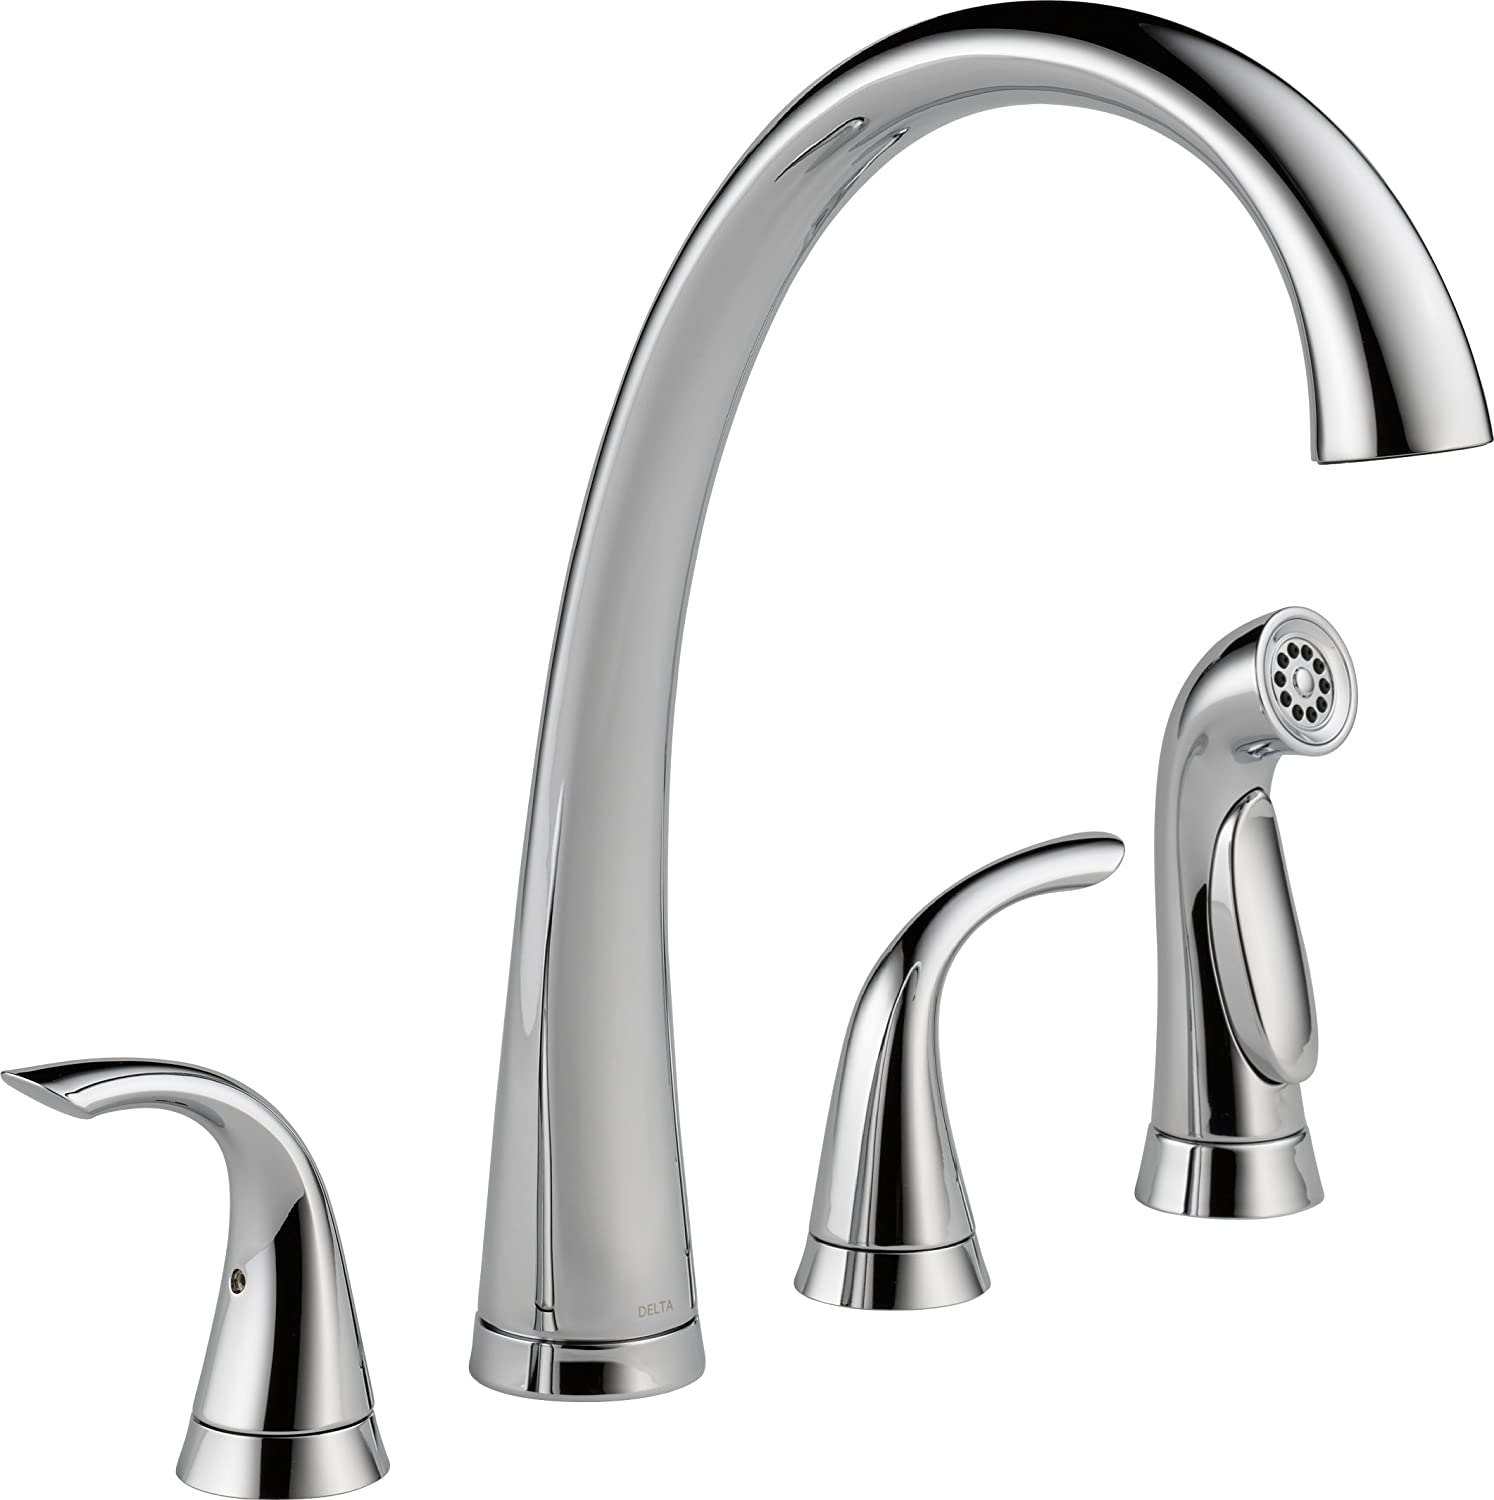 Delta Faucet Pilar 2 Handle Widespread Kitchen Sink Faucet With Side Sprayer In Matching Finish Chrome 2480 Dst Touch On Kitchen Sink Faucets Amazon Com